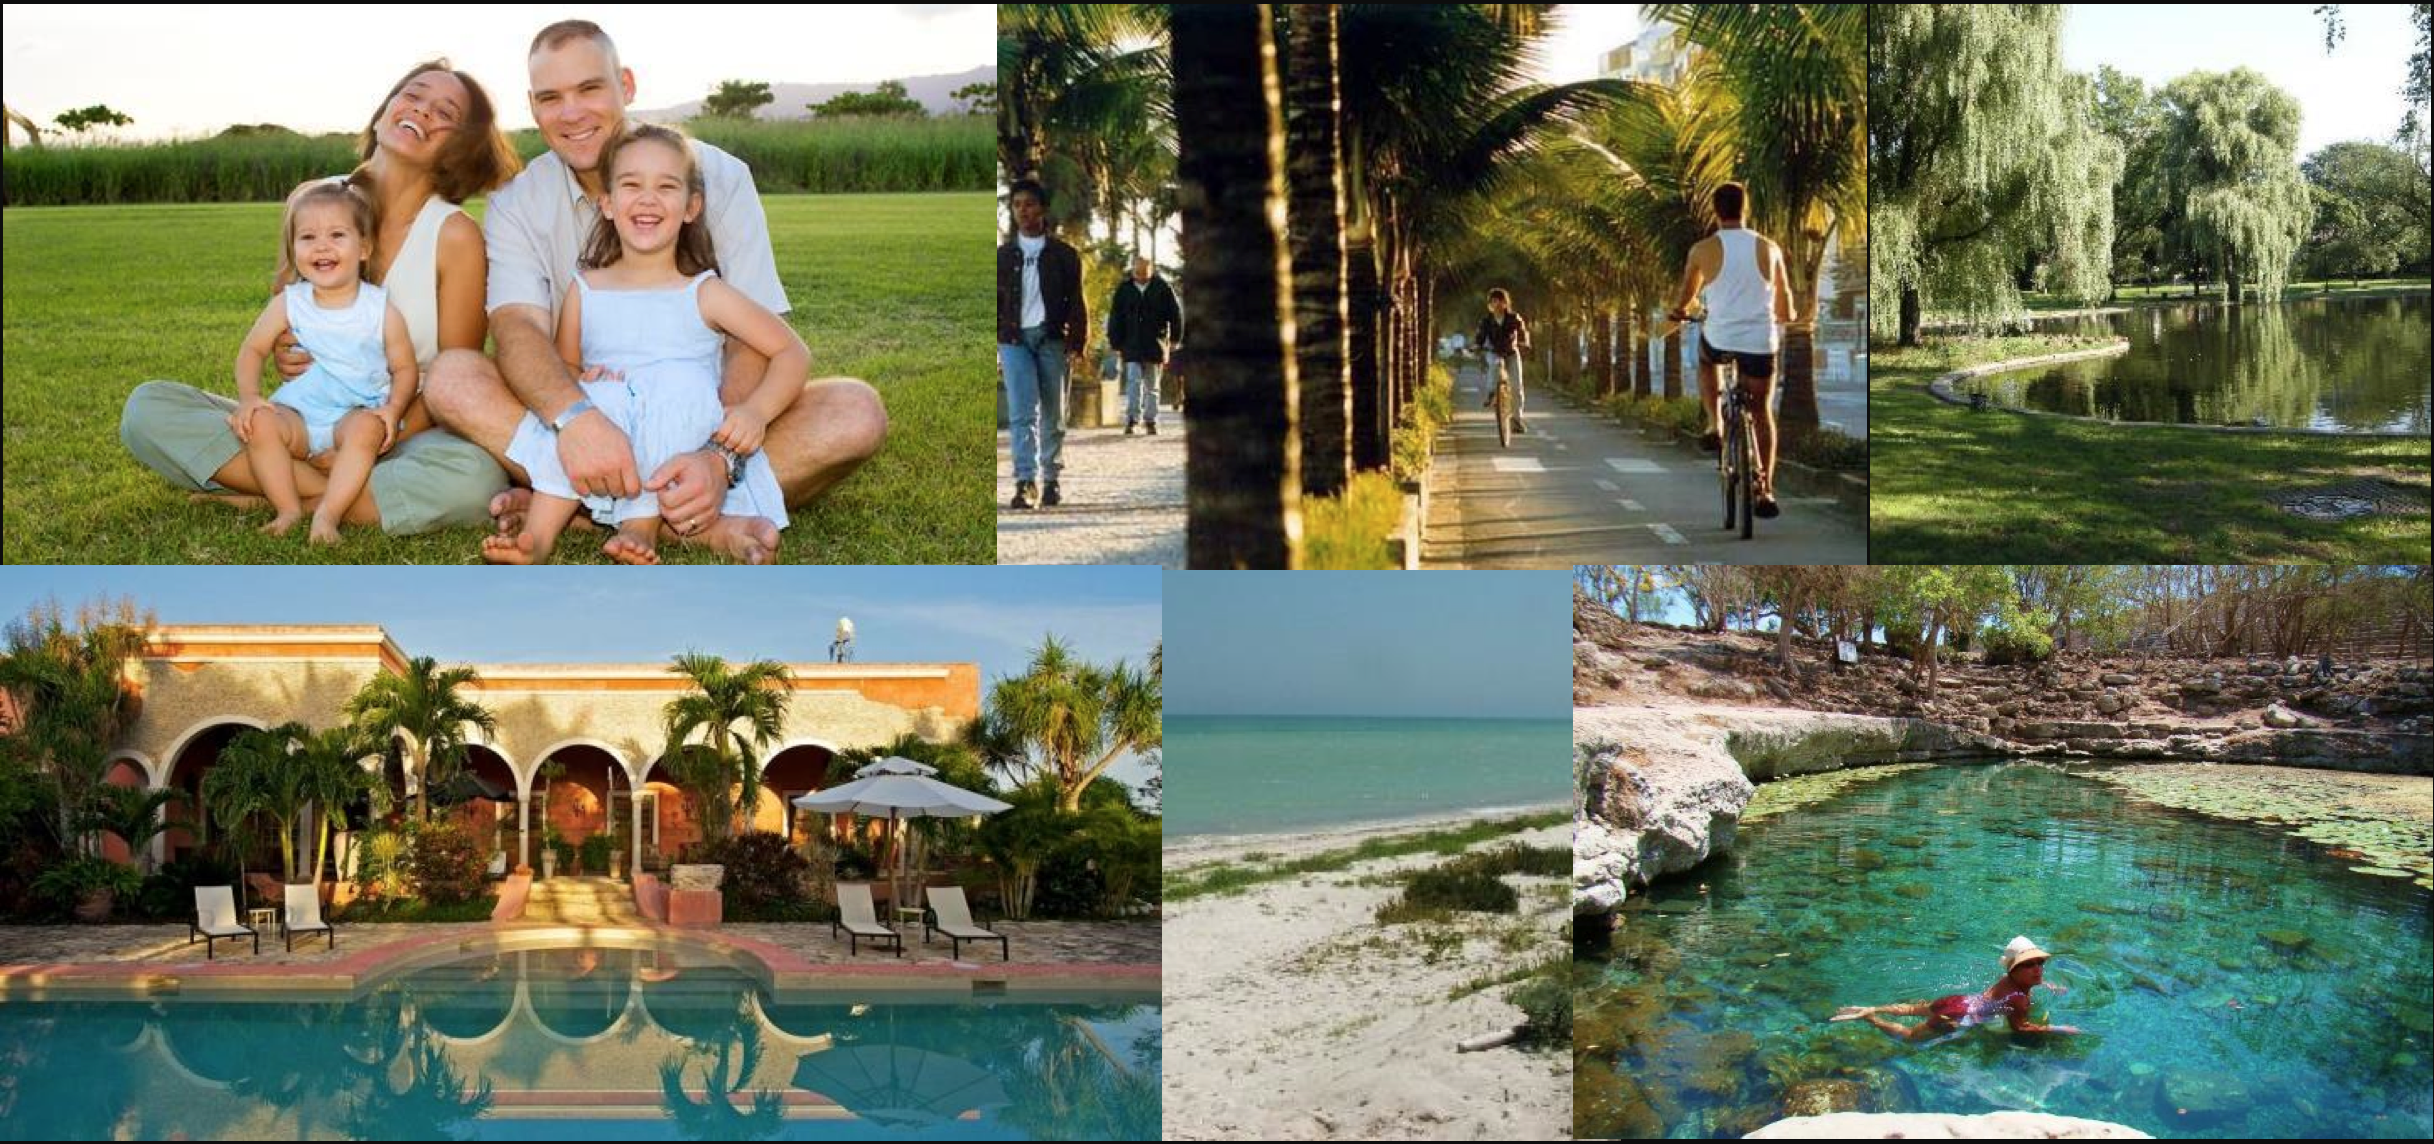 Life in the Yucatan is Grand!